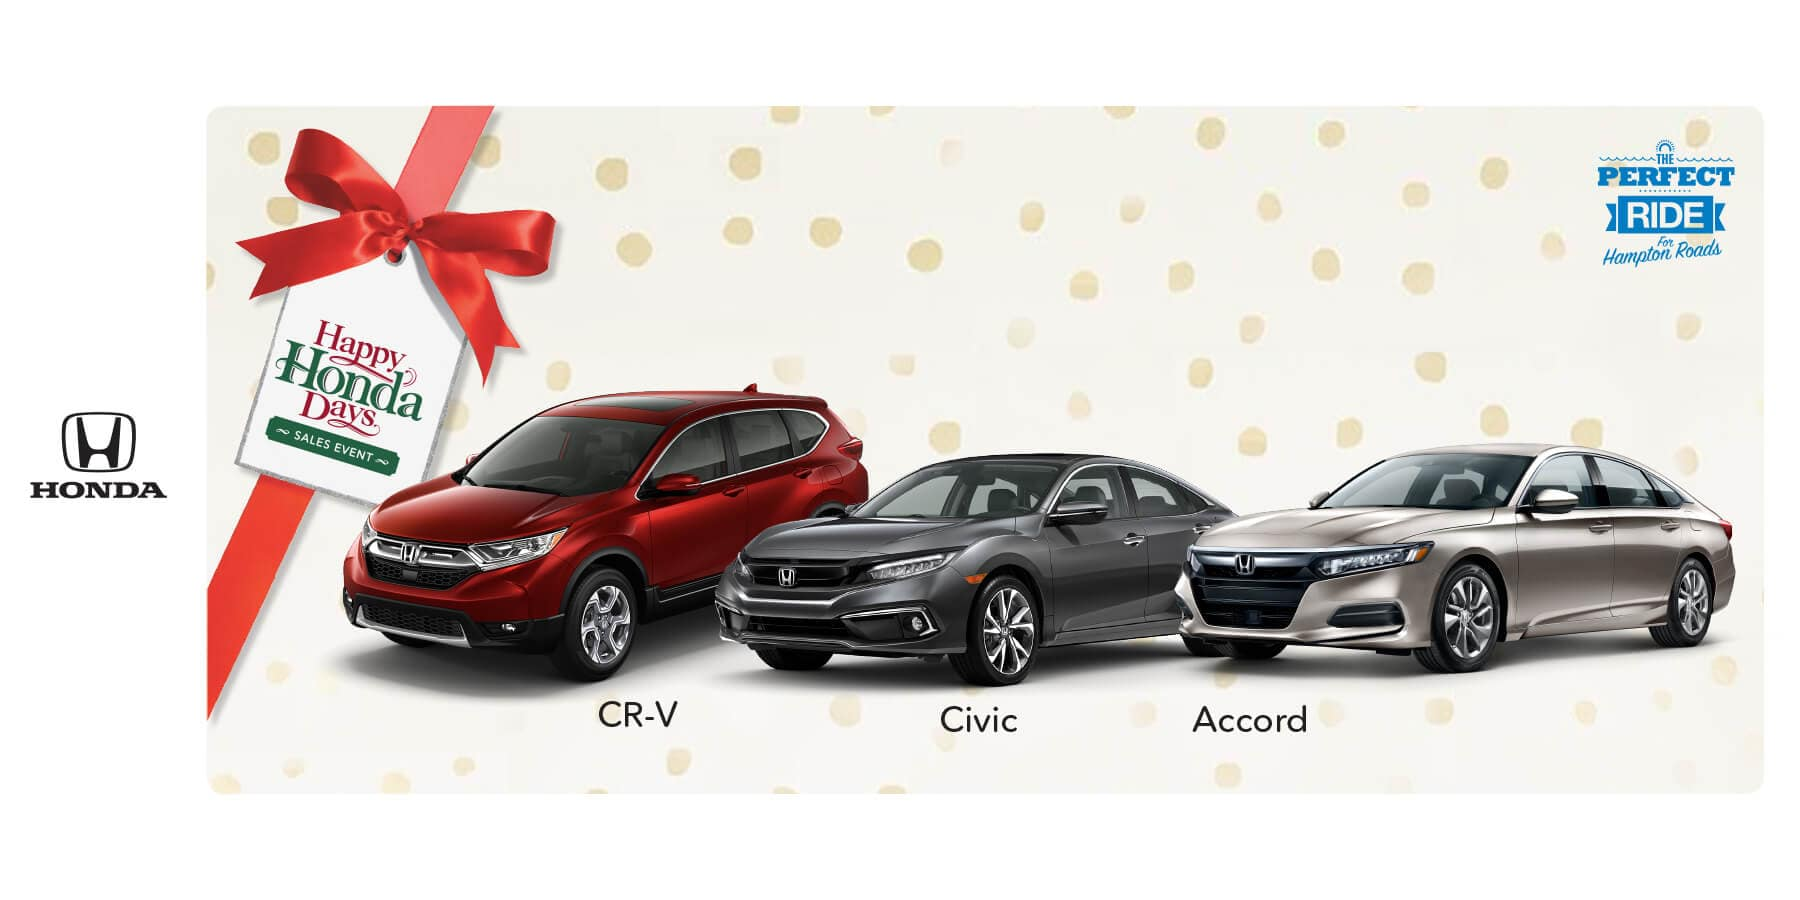 Happy Honda Days Sales Event Hampton Roads Honda Dealers HP Slide